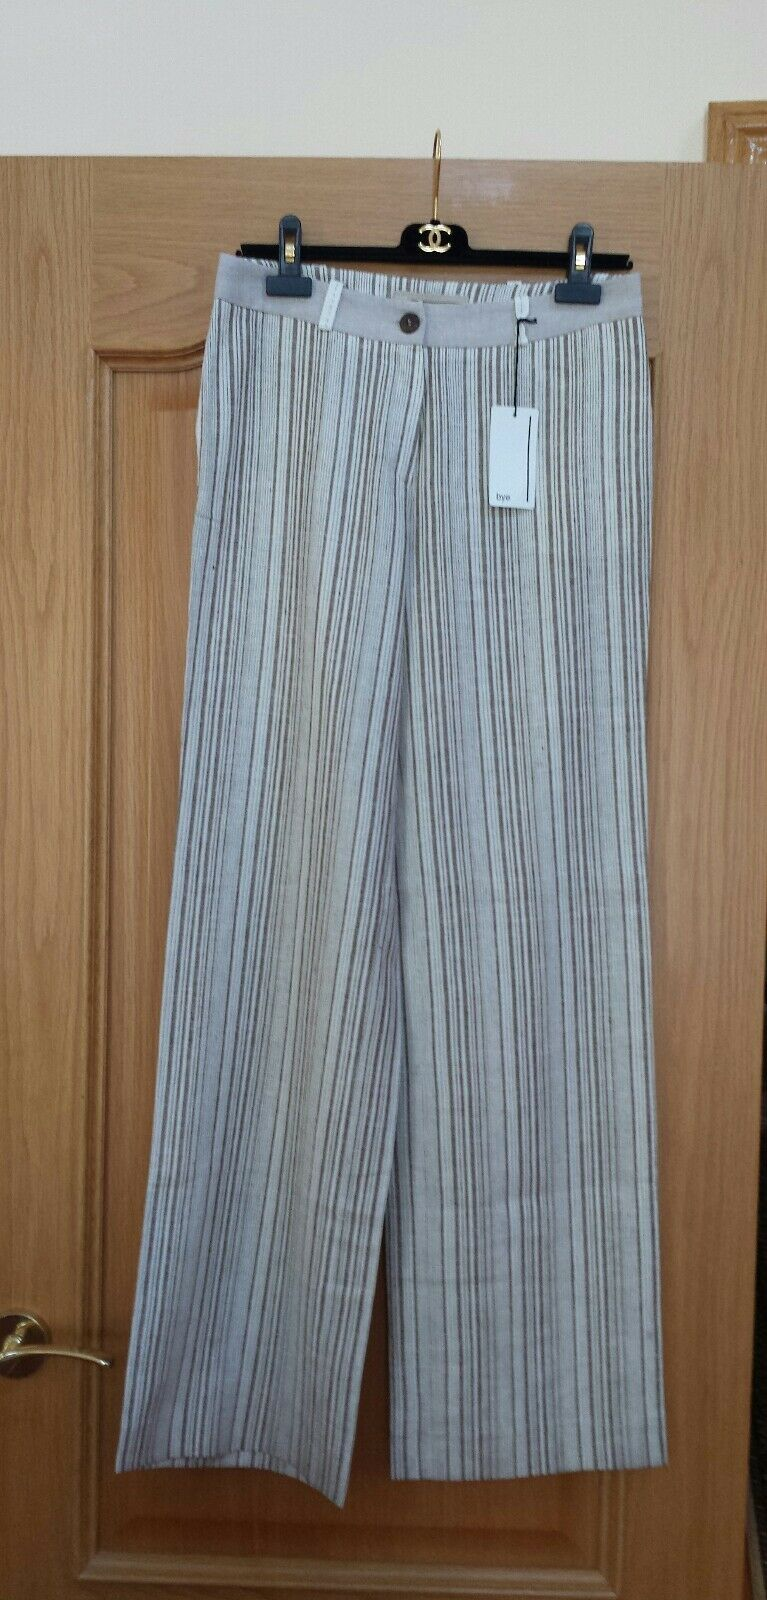 NEW 100% LINEN PANTS by BYE BRAND, grau & Weiß, EUR 38, US 6, STRIPED, FRANCE